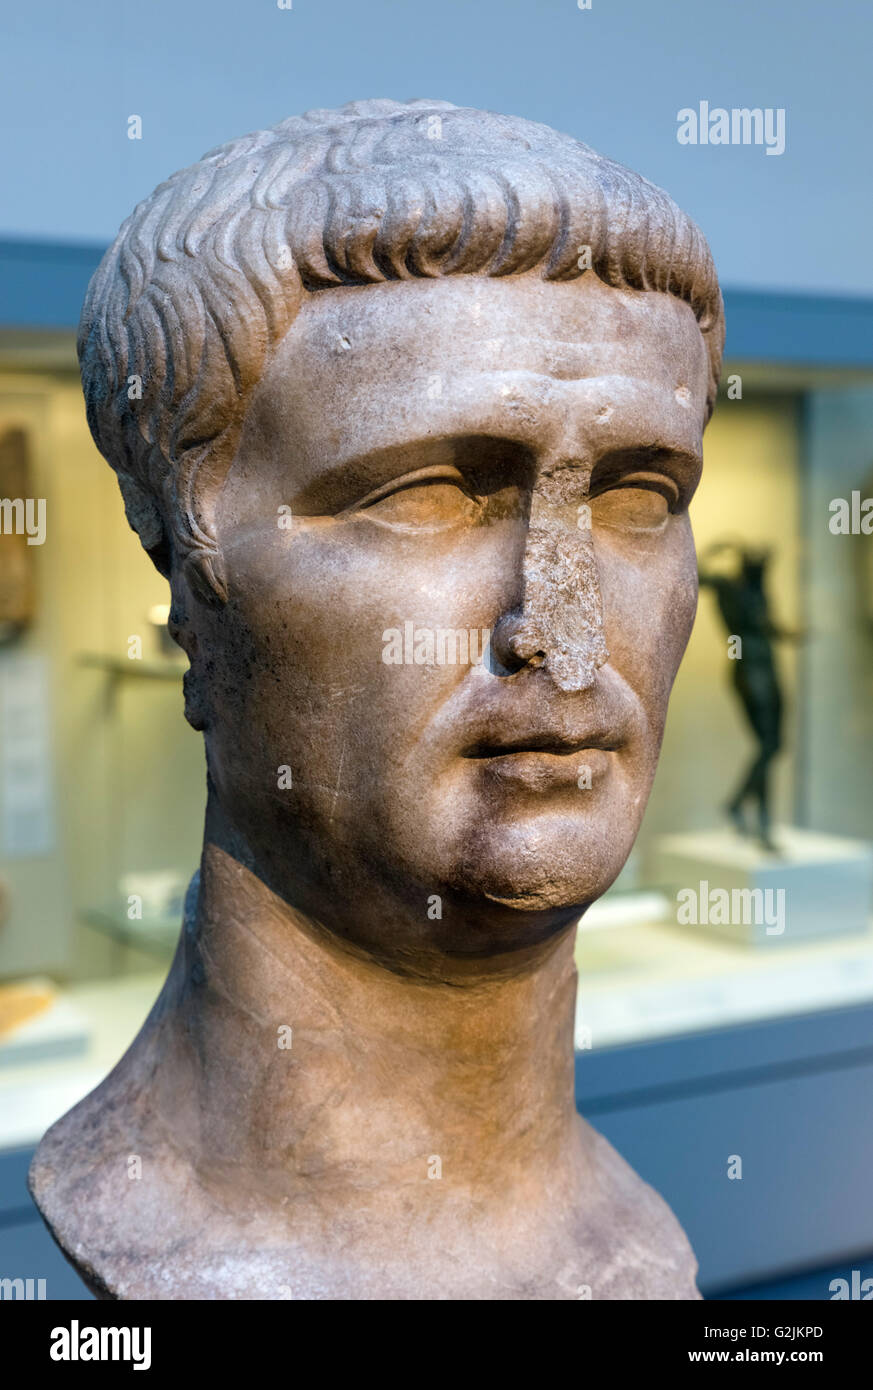 Marble head from a statue of the Emperor Claudius (10 BC – 54 AD), fourth Emperor of the Roman Empire (AD 41-54), - Stock Image